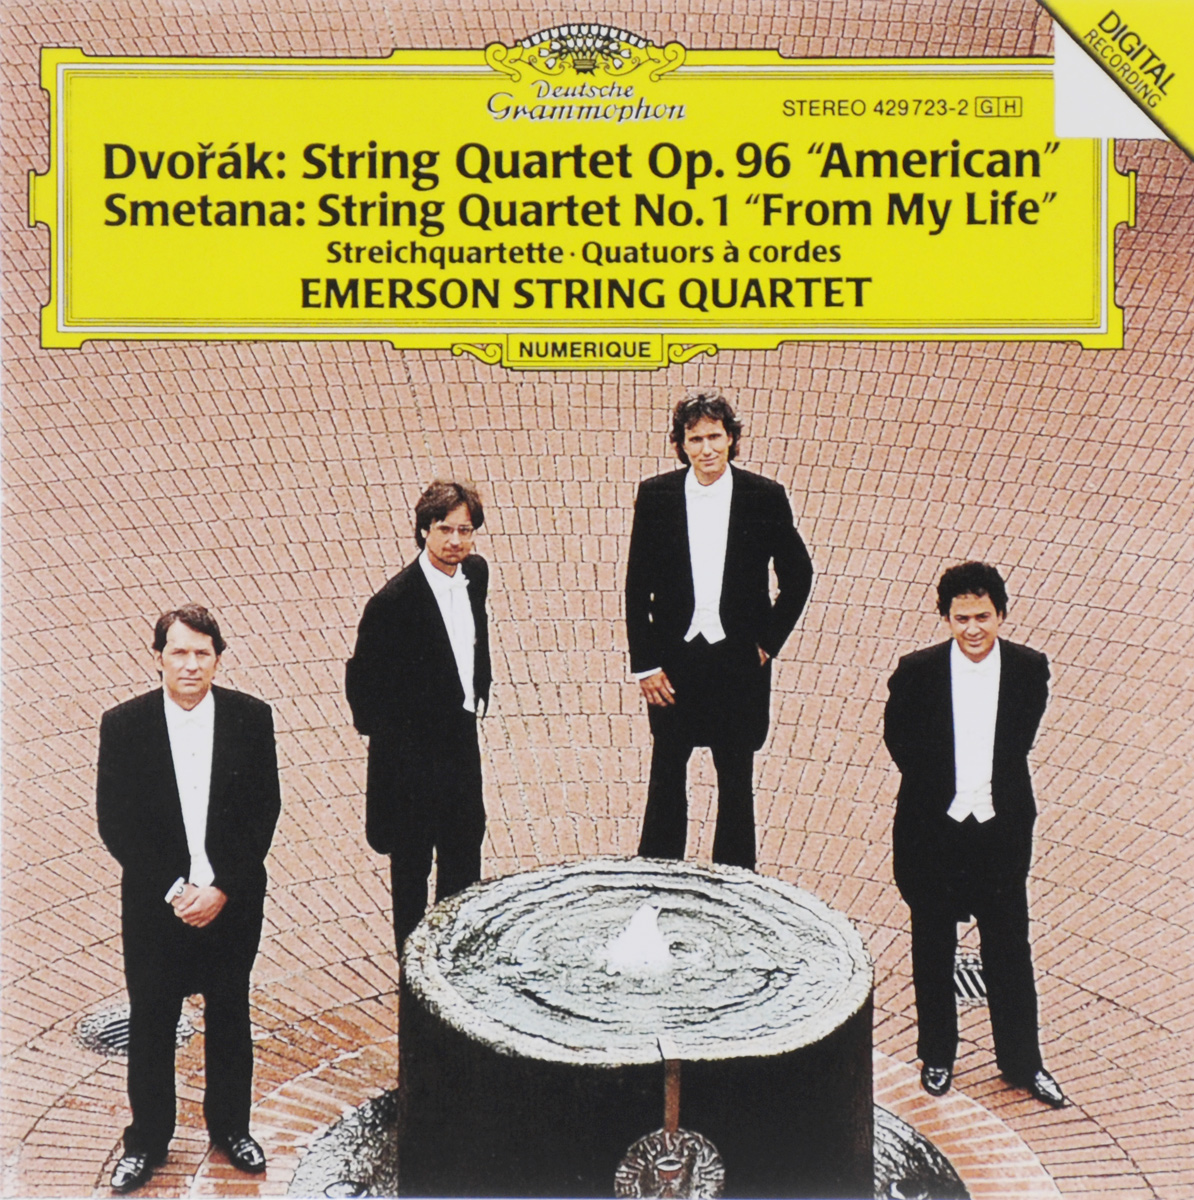 Emerson String Quartet Emerson String Quartet. String Quartet Op. 96 American / String Quartet No. 1 From My Life avon